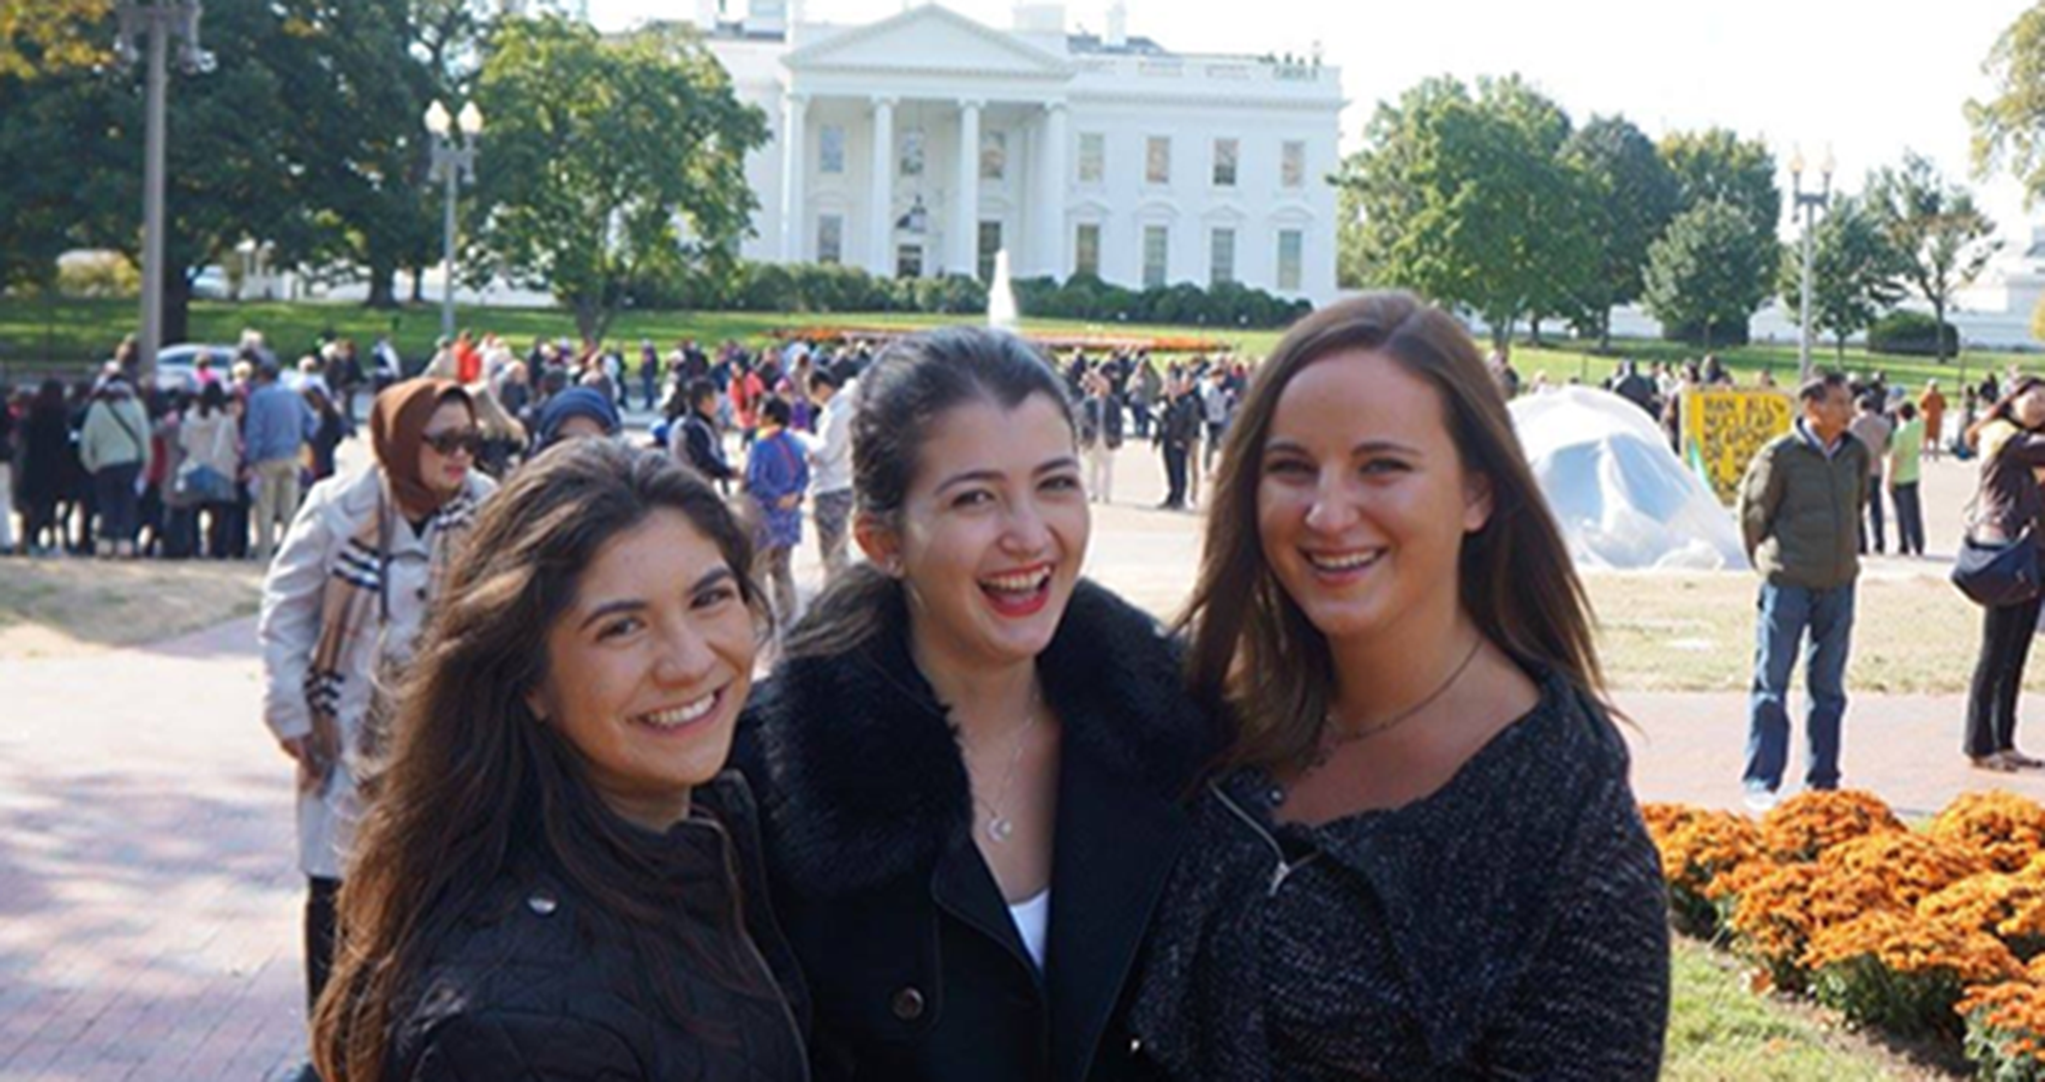 Gap Year Program - American University Gap Program  8